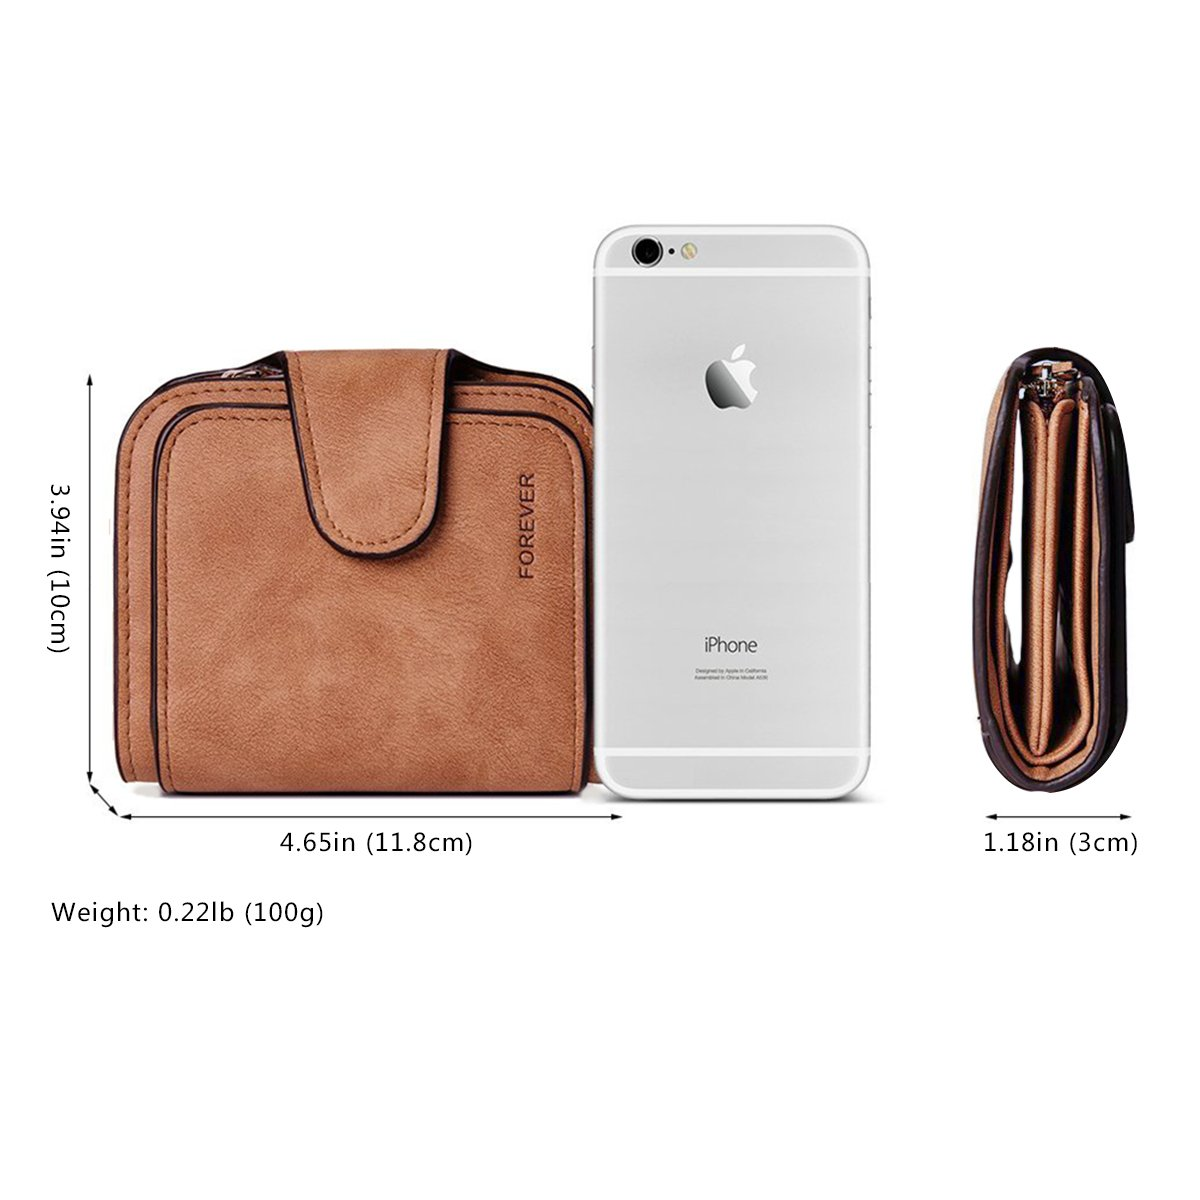 Wallet for Women Leather Clutch Short Purse Ladies Credit Card Holder Organizer with Zip Pocket - Brown by EUGO (Image #6)